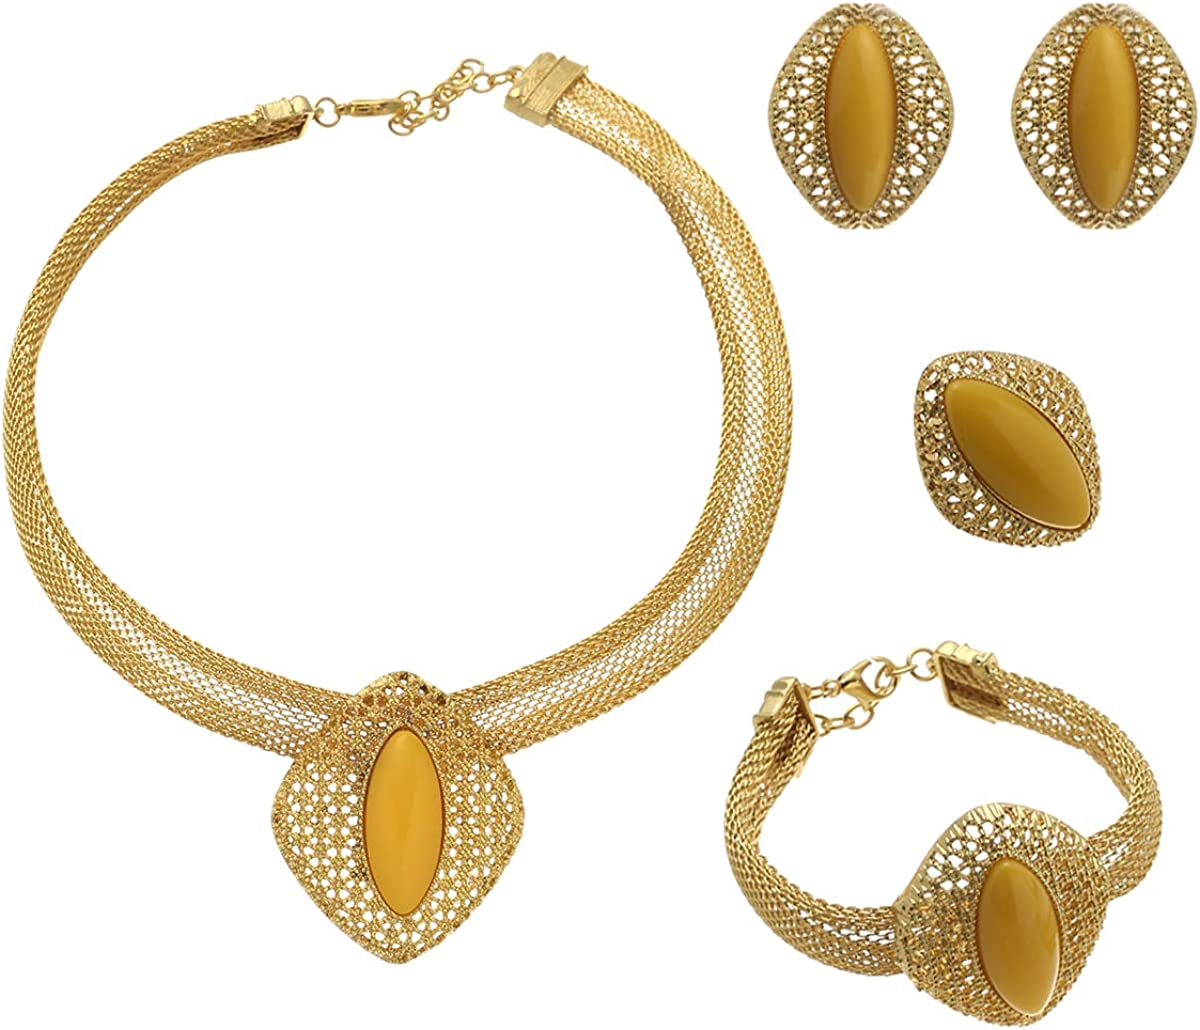 African Gold Color Bridal Wedding Jewelry Sets for Women Dubai Necklace Bracelet Earrings Ring Jewellery Set